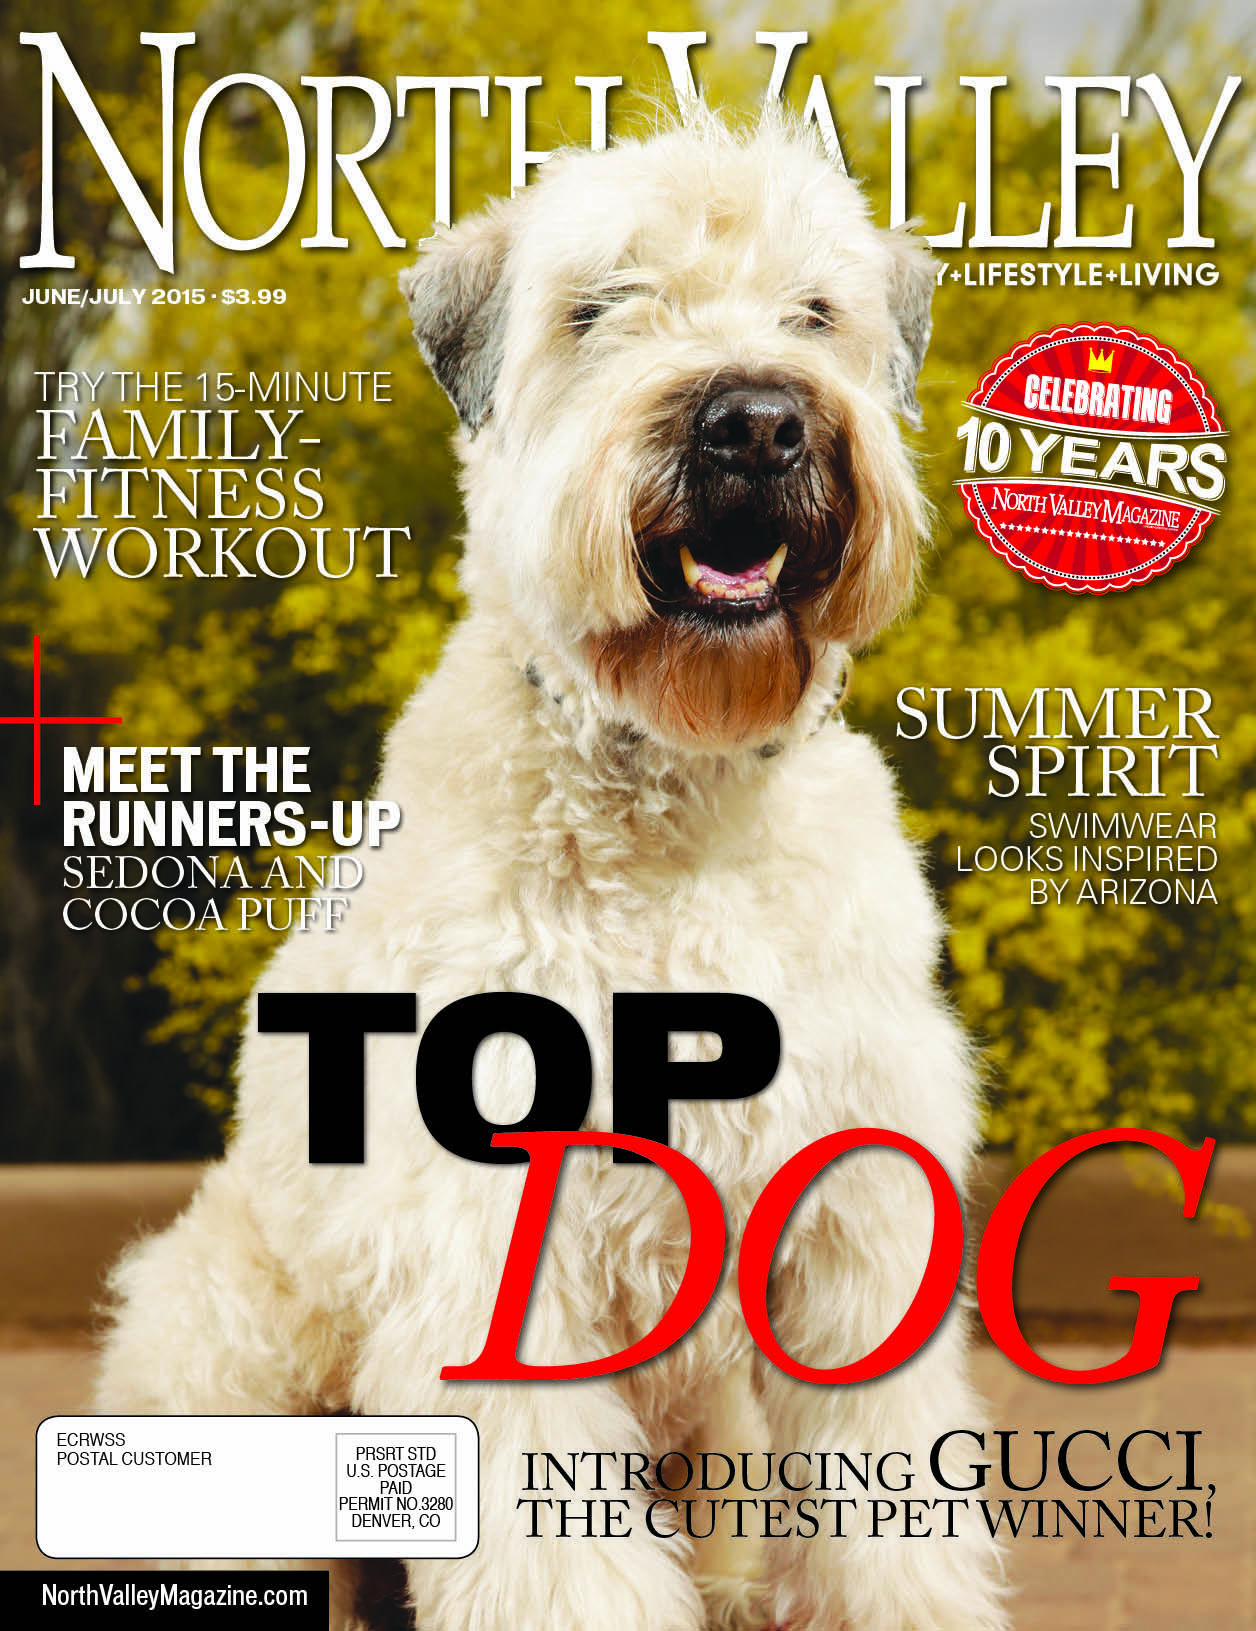 The June/July '15 issue of North Valley Magazine, produced by The Media Barr, Inc.